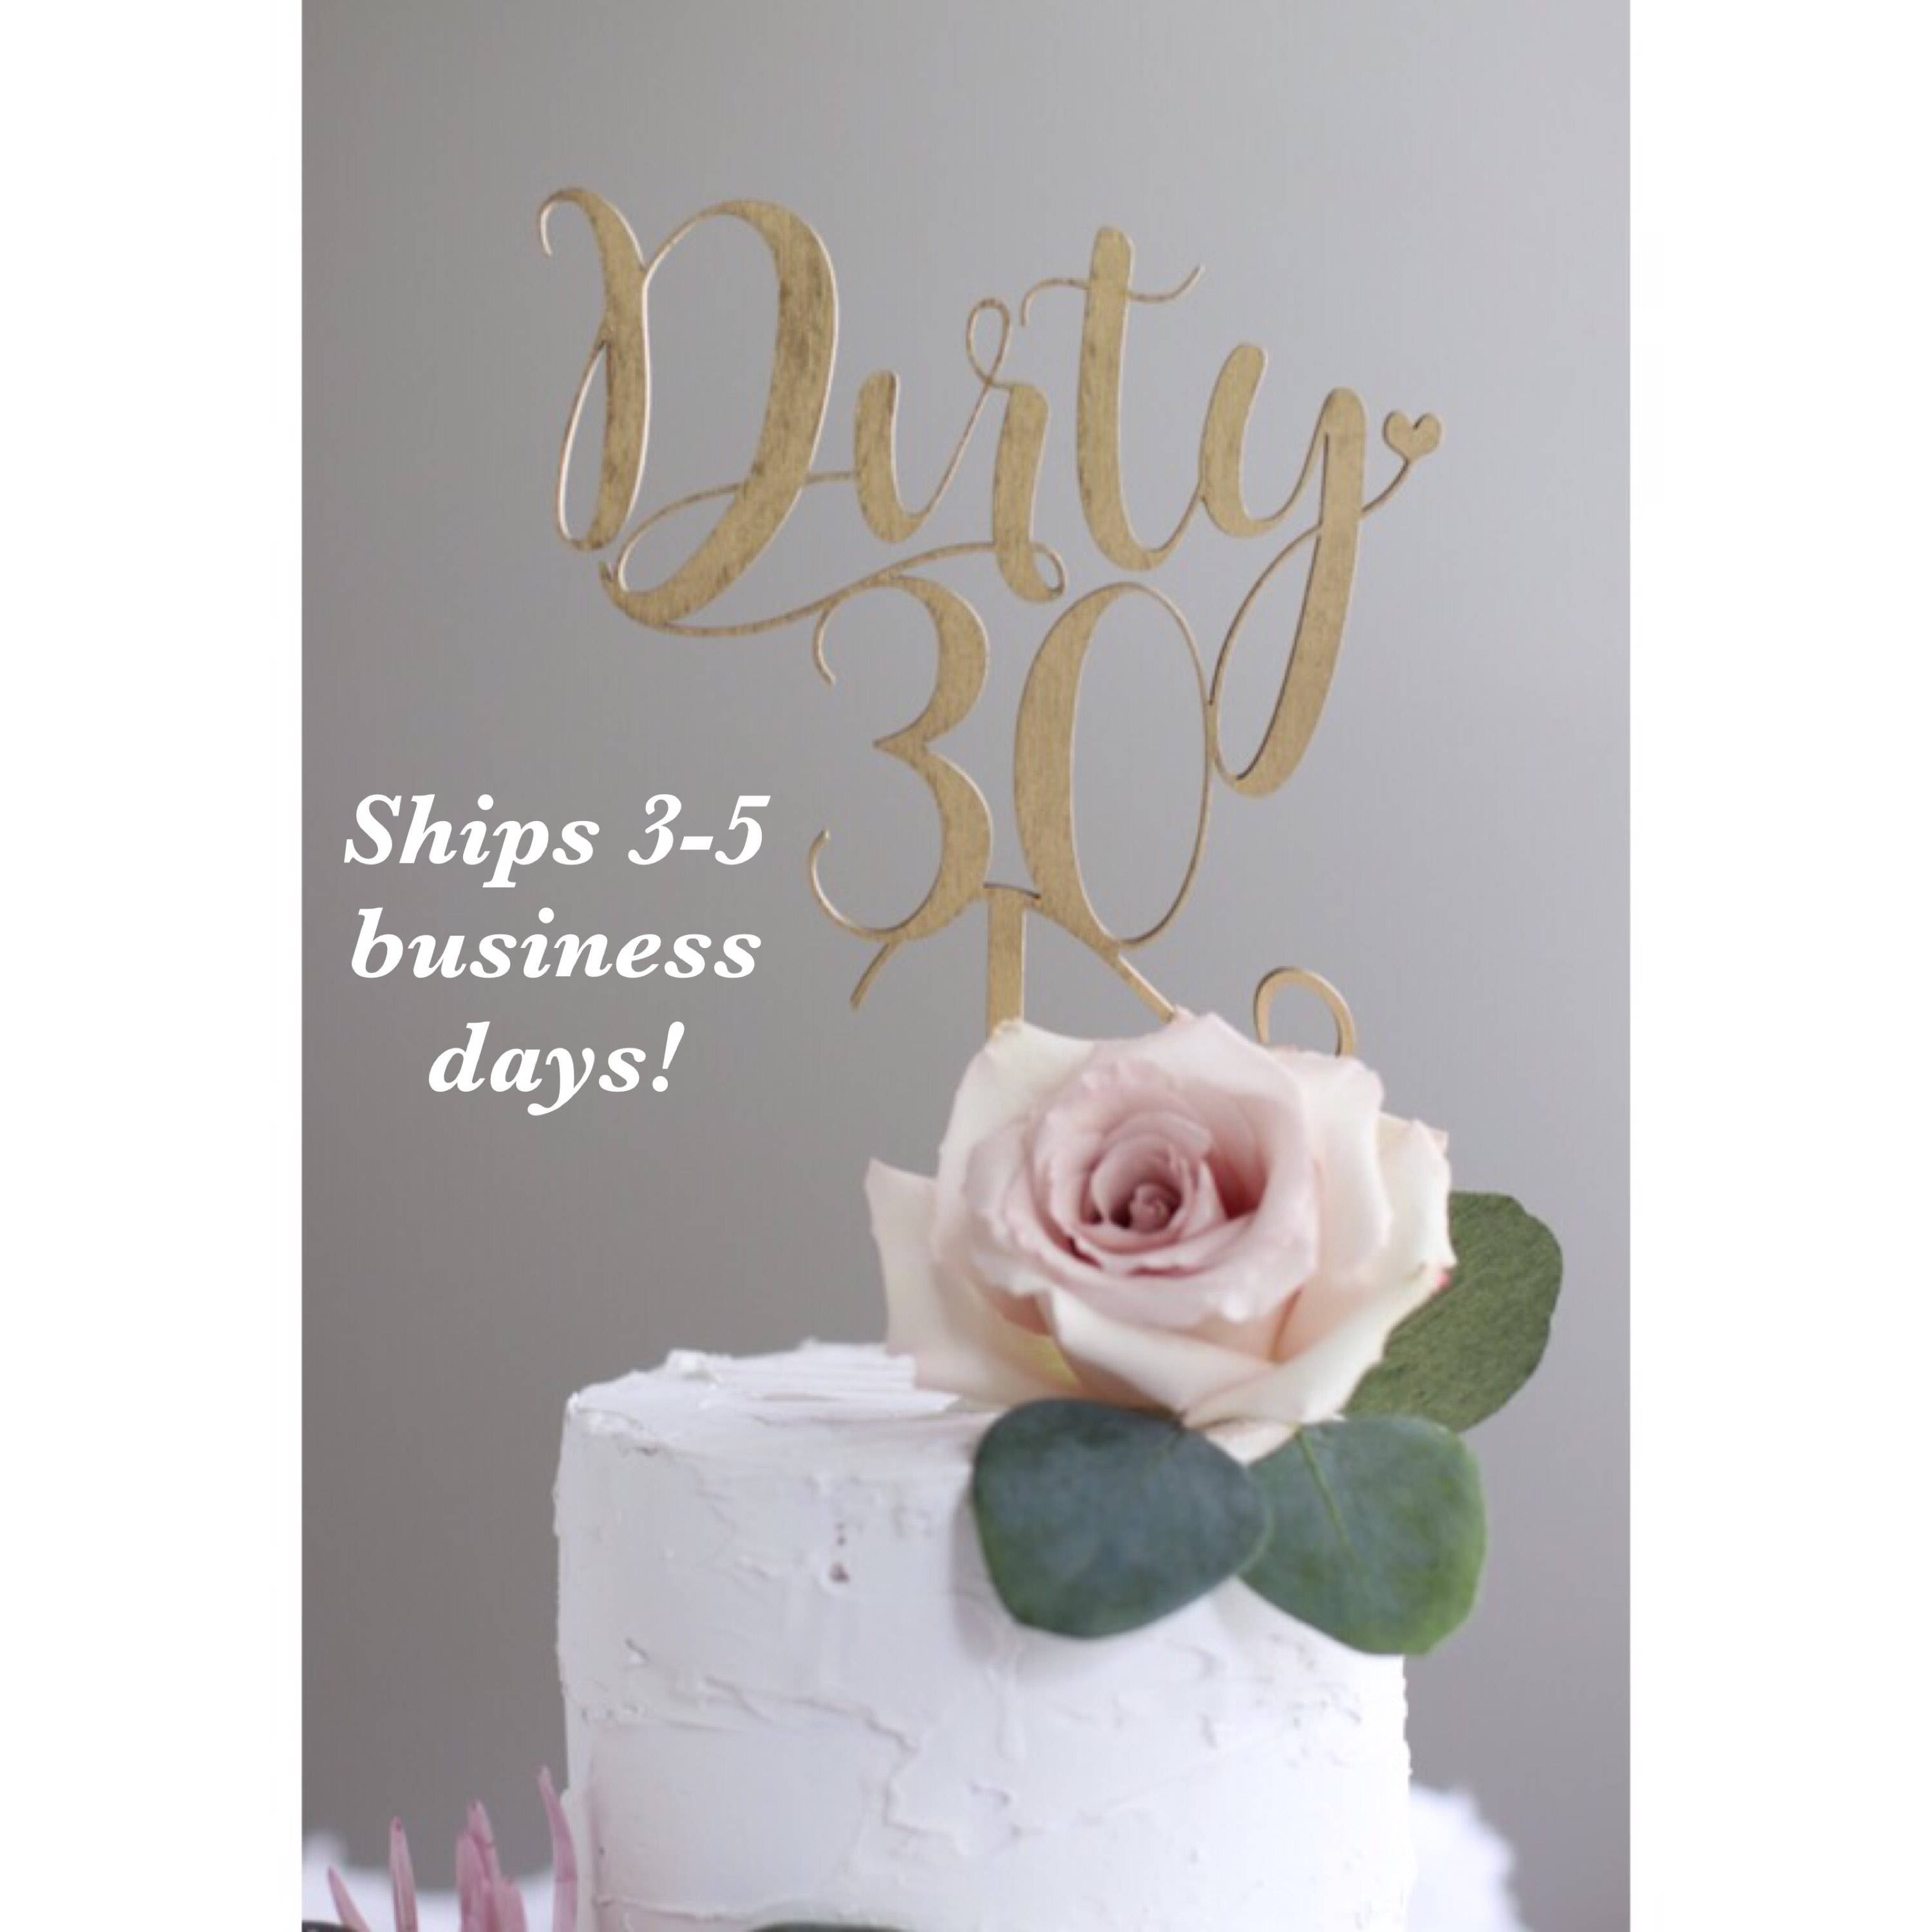 DIRTY THIRTY BIRTHDAY Cake Topper Ships In 3 5 Business Days Other Colors Available 30th Birthday Celebration